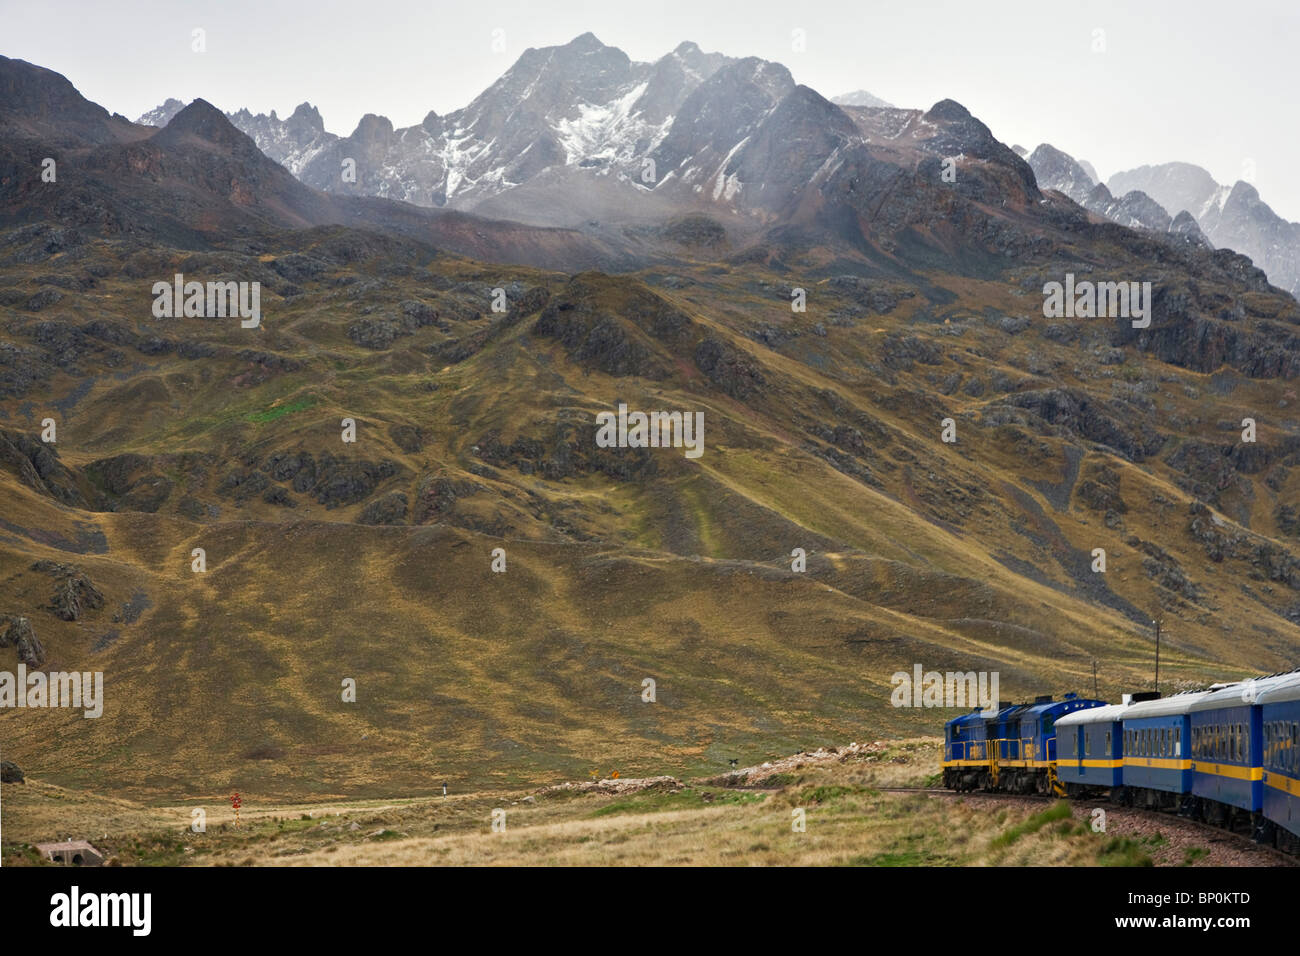 Peru, Scenery in the high Andean Mountains from the comfort of the Andean Explorer express train Cusco to Puno. - Stock Image